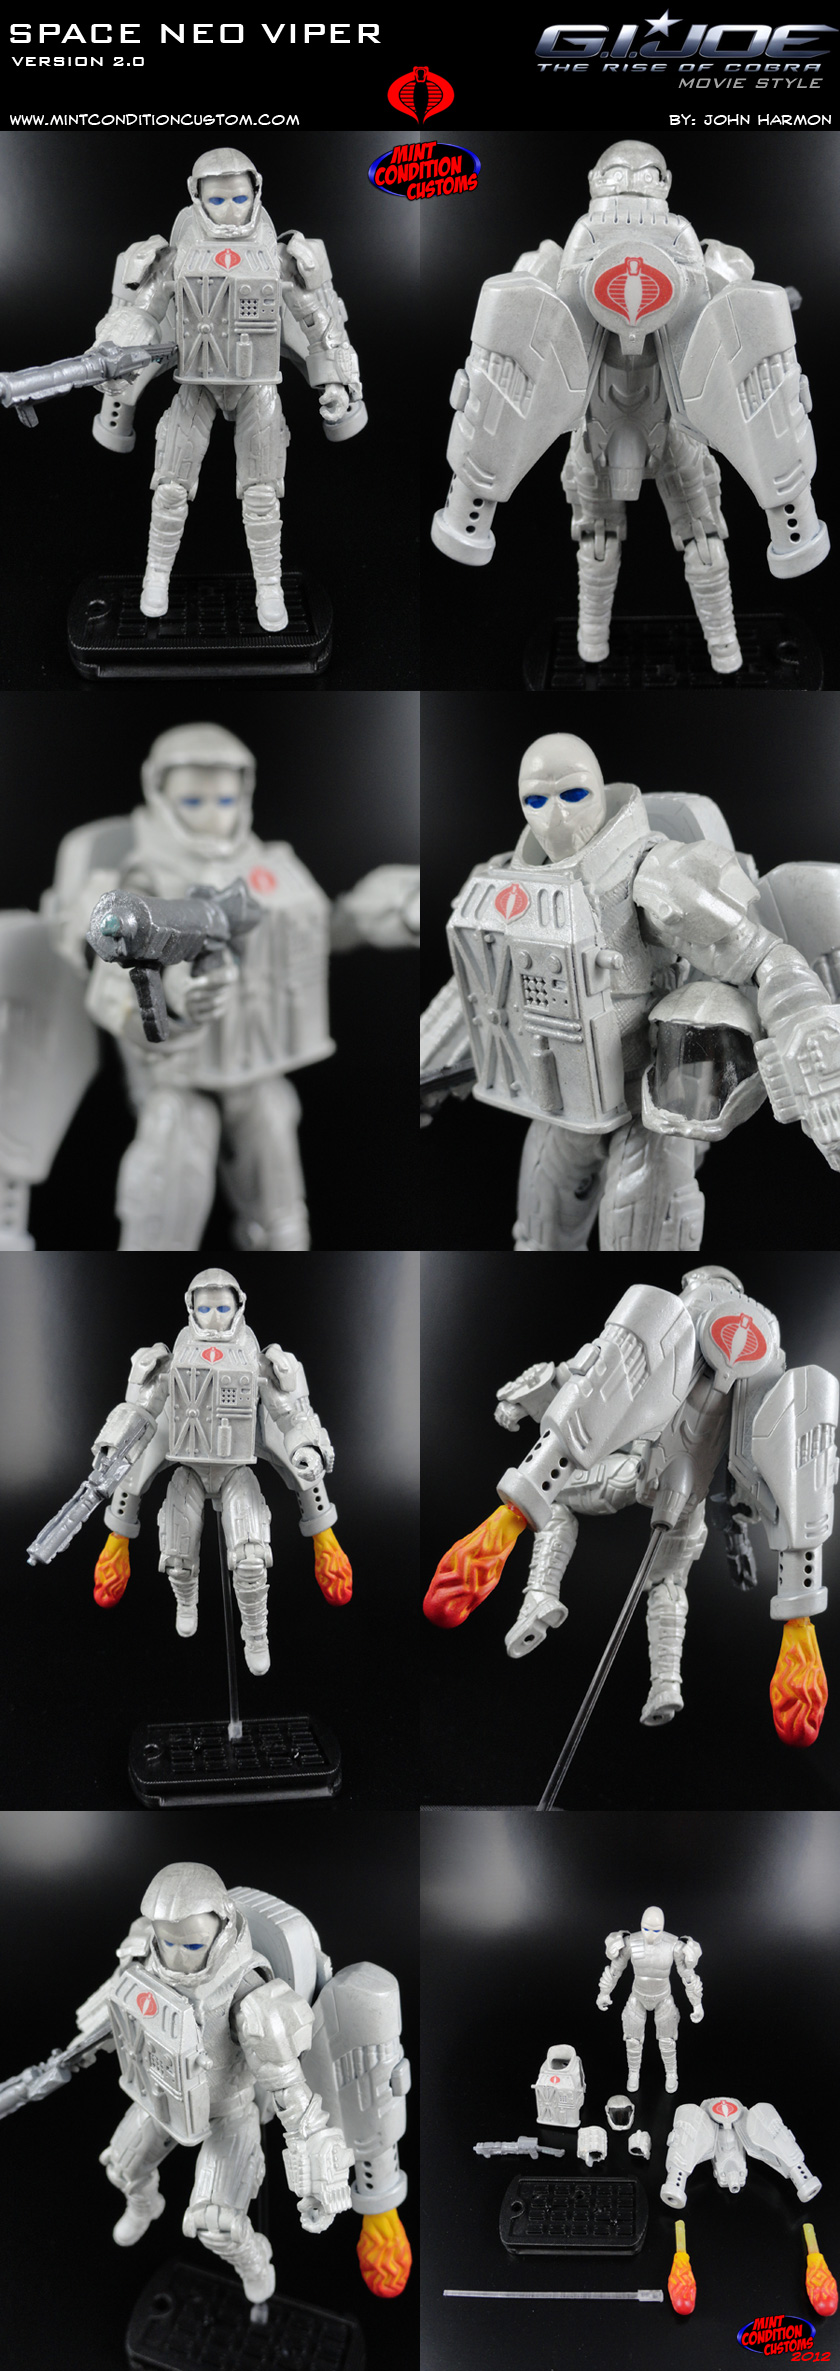 "Custom Space Neo Viper Version 2 3 3/4"" G.I. Joe Rise Pursuit of Cobra Retaliation Action Figure"